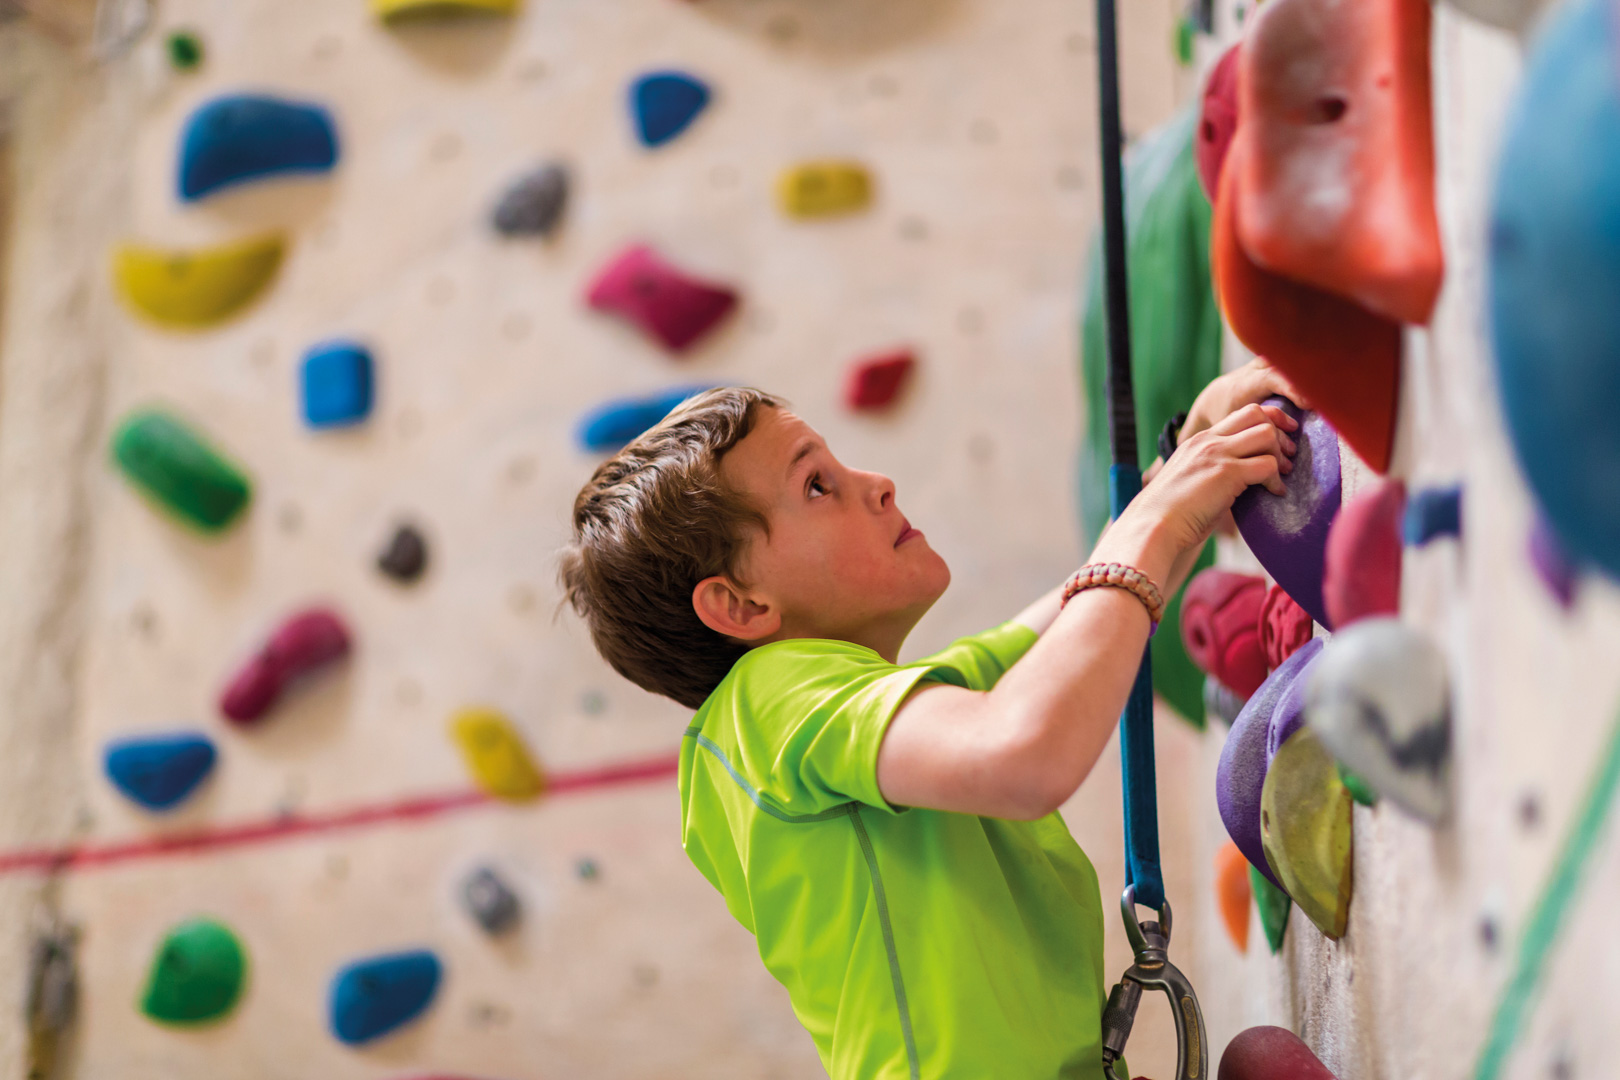 Young boy on climbing wall